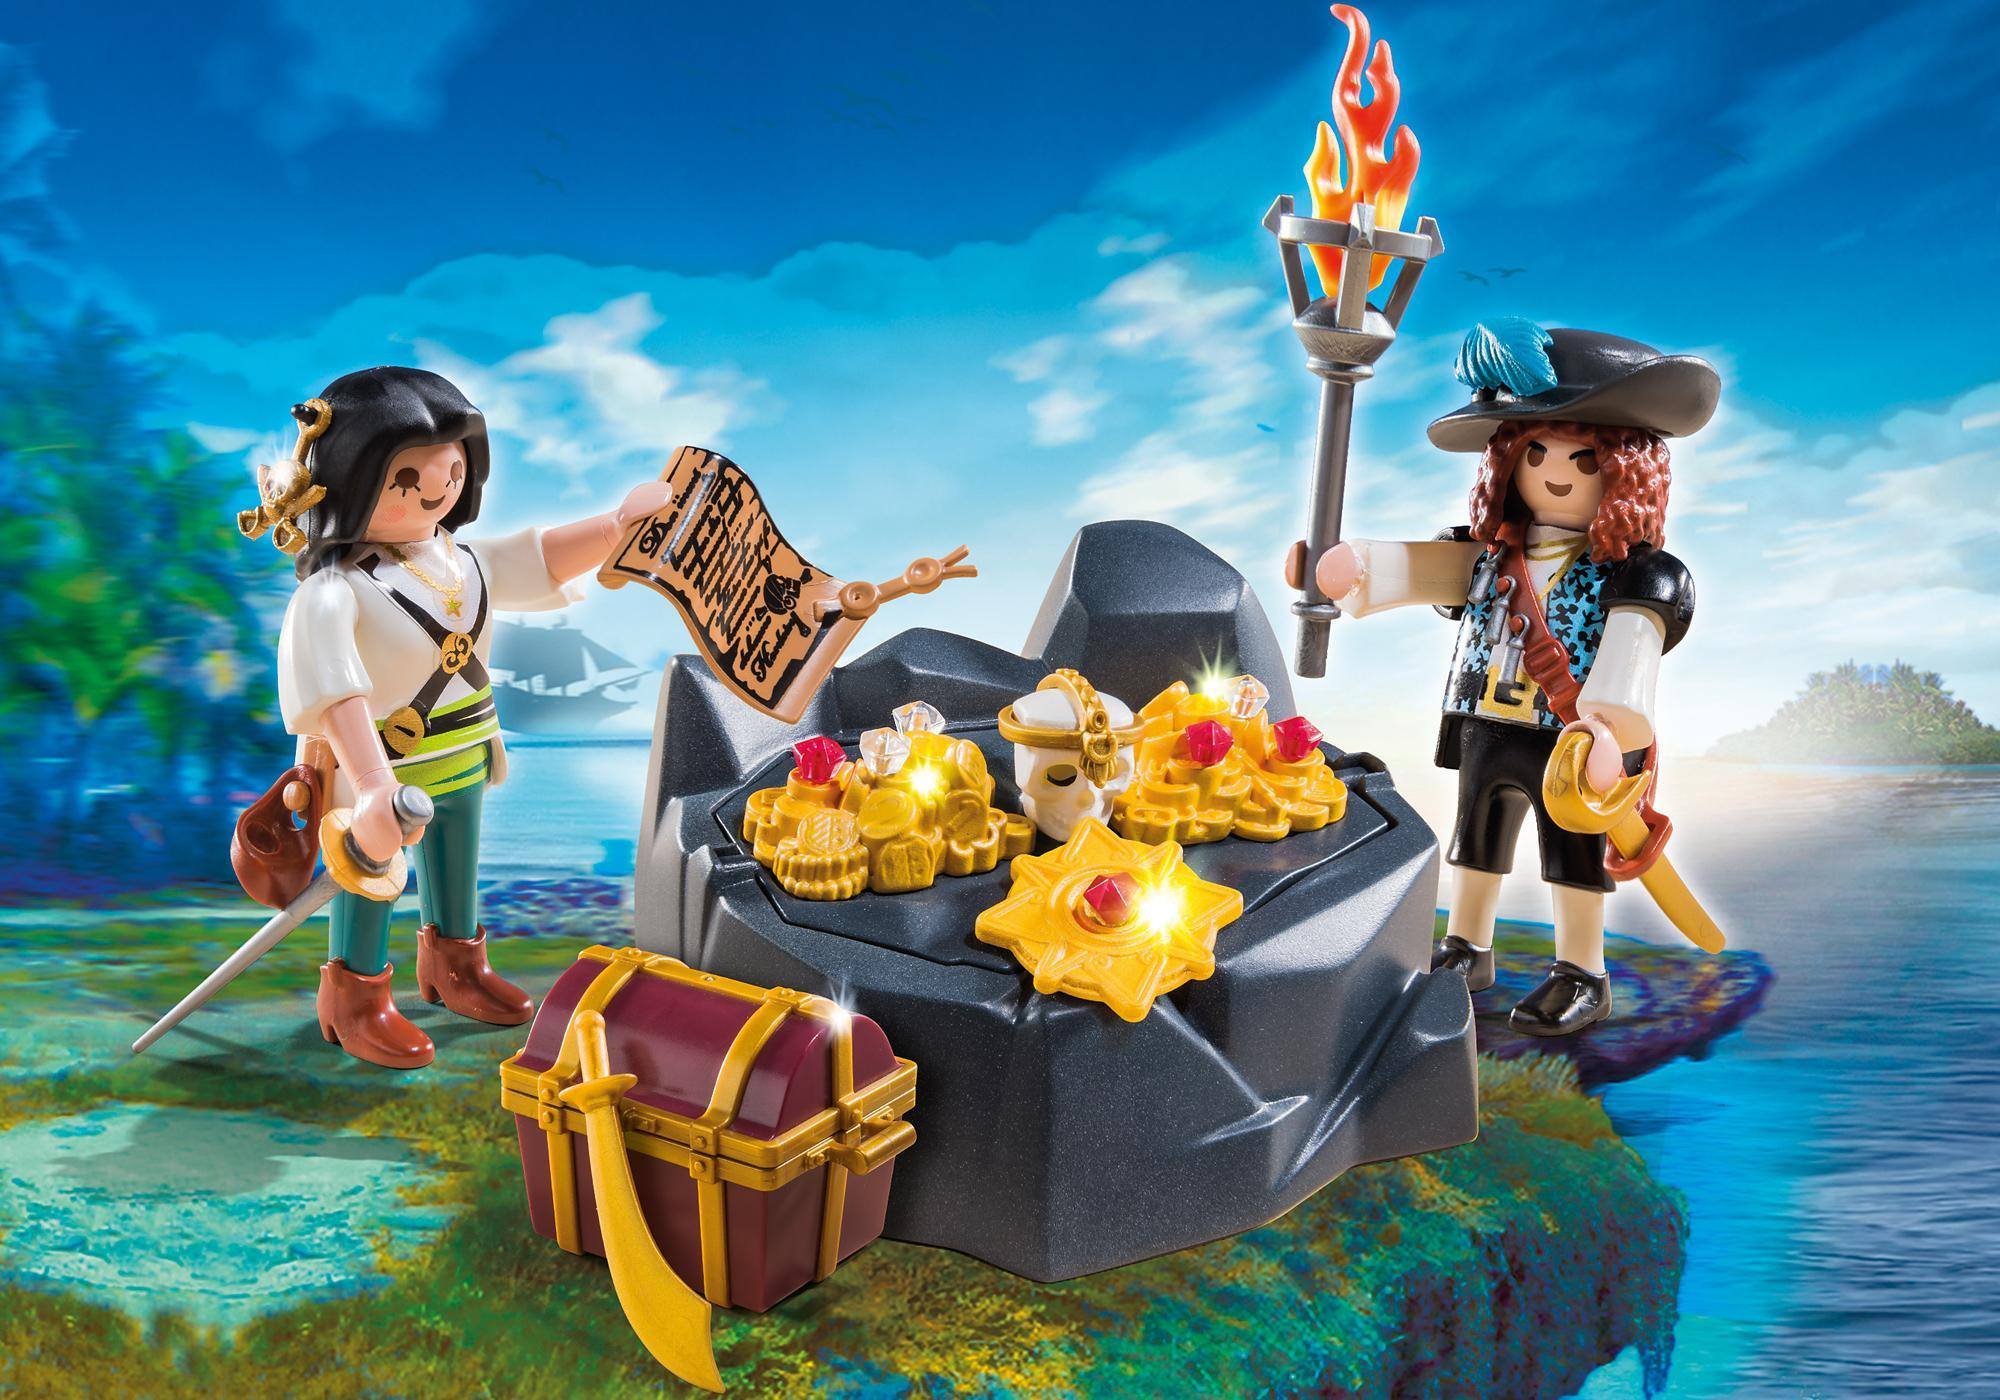 http://media.playmobil.com/i/playmobil/6683_product_detail/Piraten-Schatzversteck